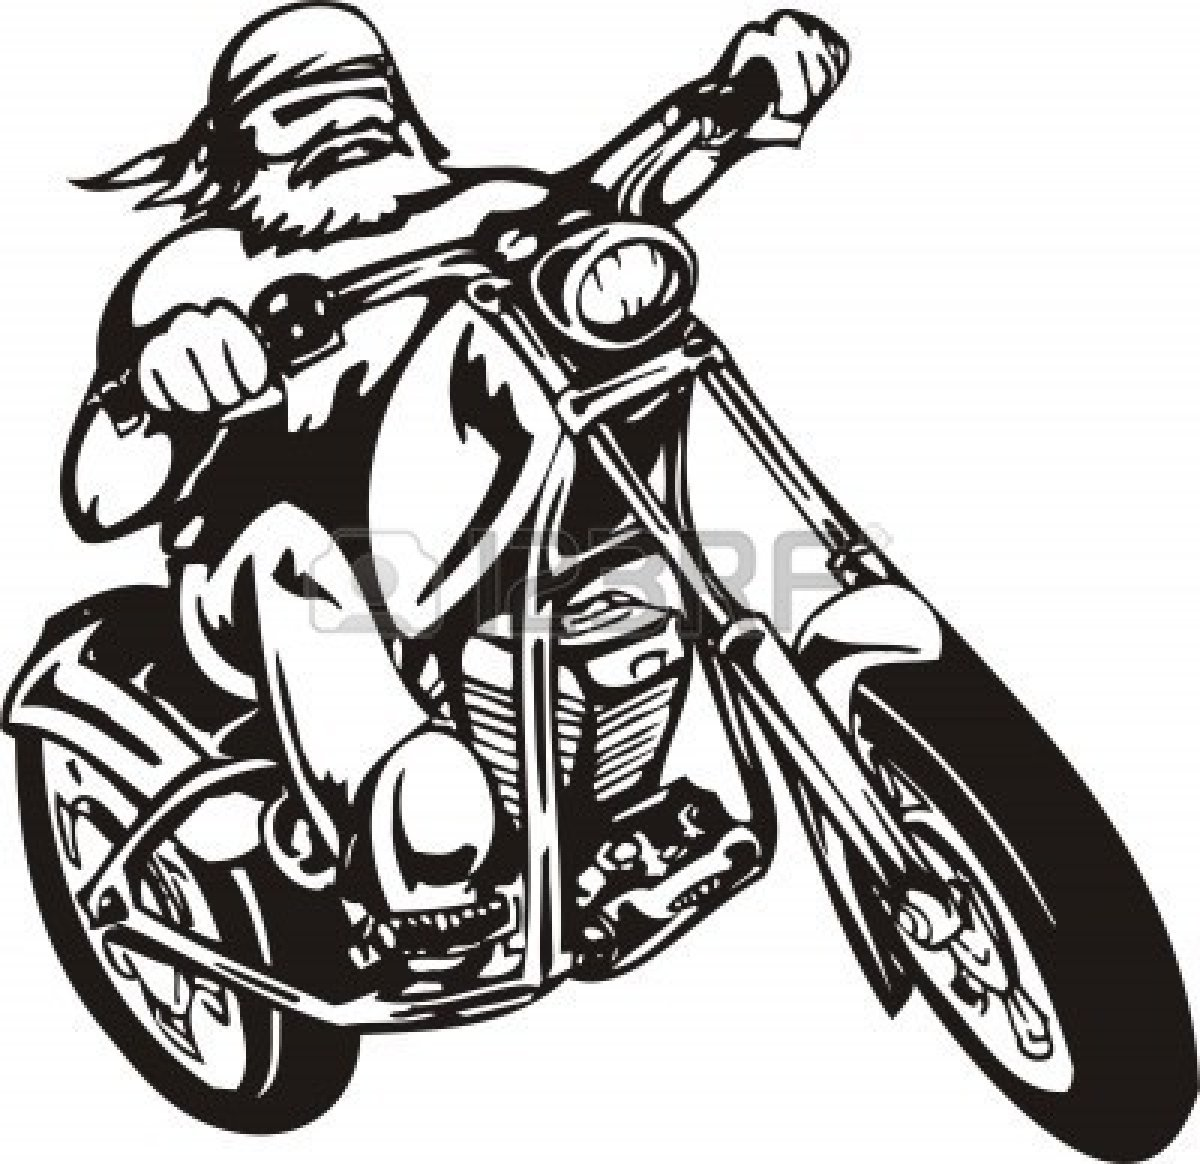 motorcycle clipart vector - photo #12